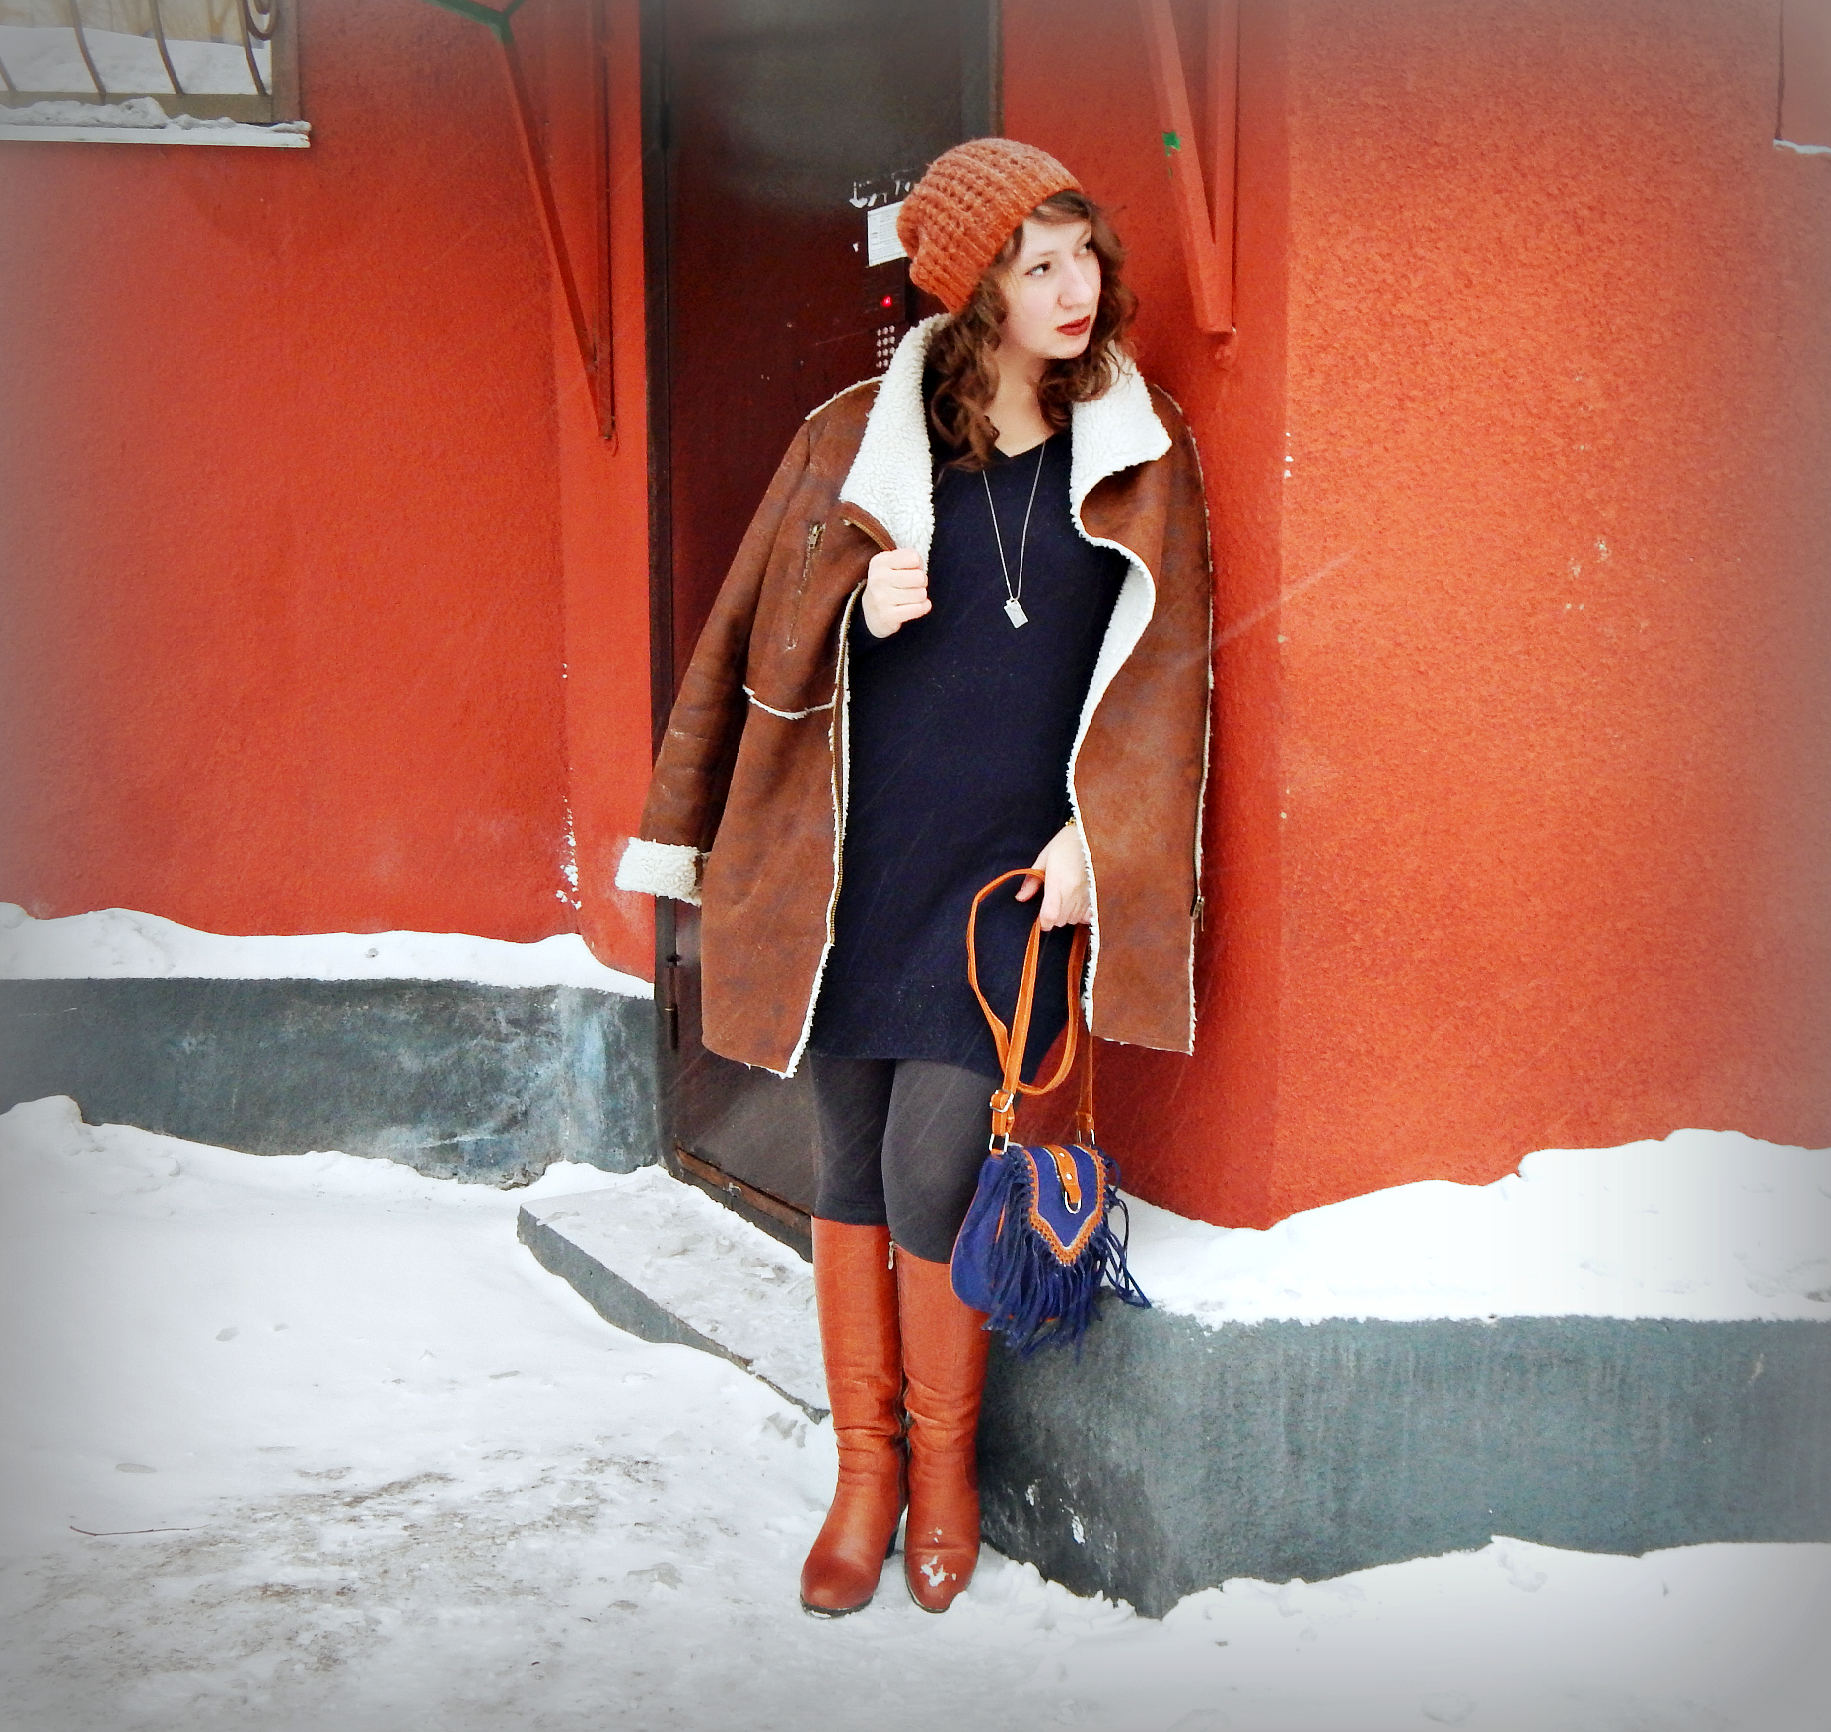 Accents winter...http://vk.com/lenusik5lapusik